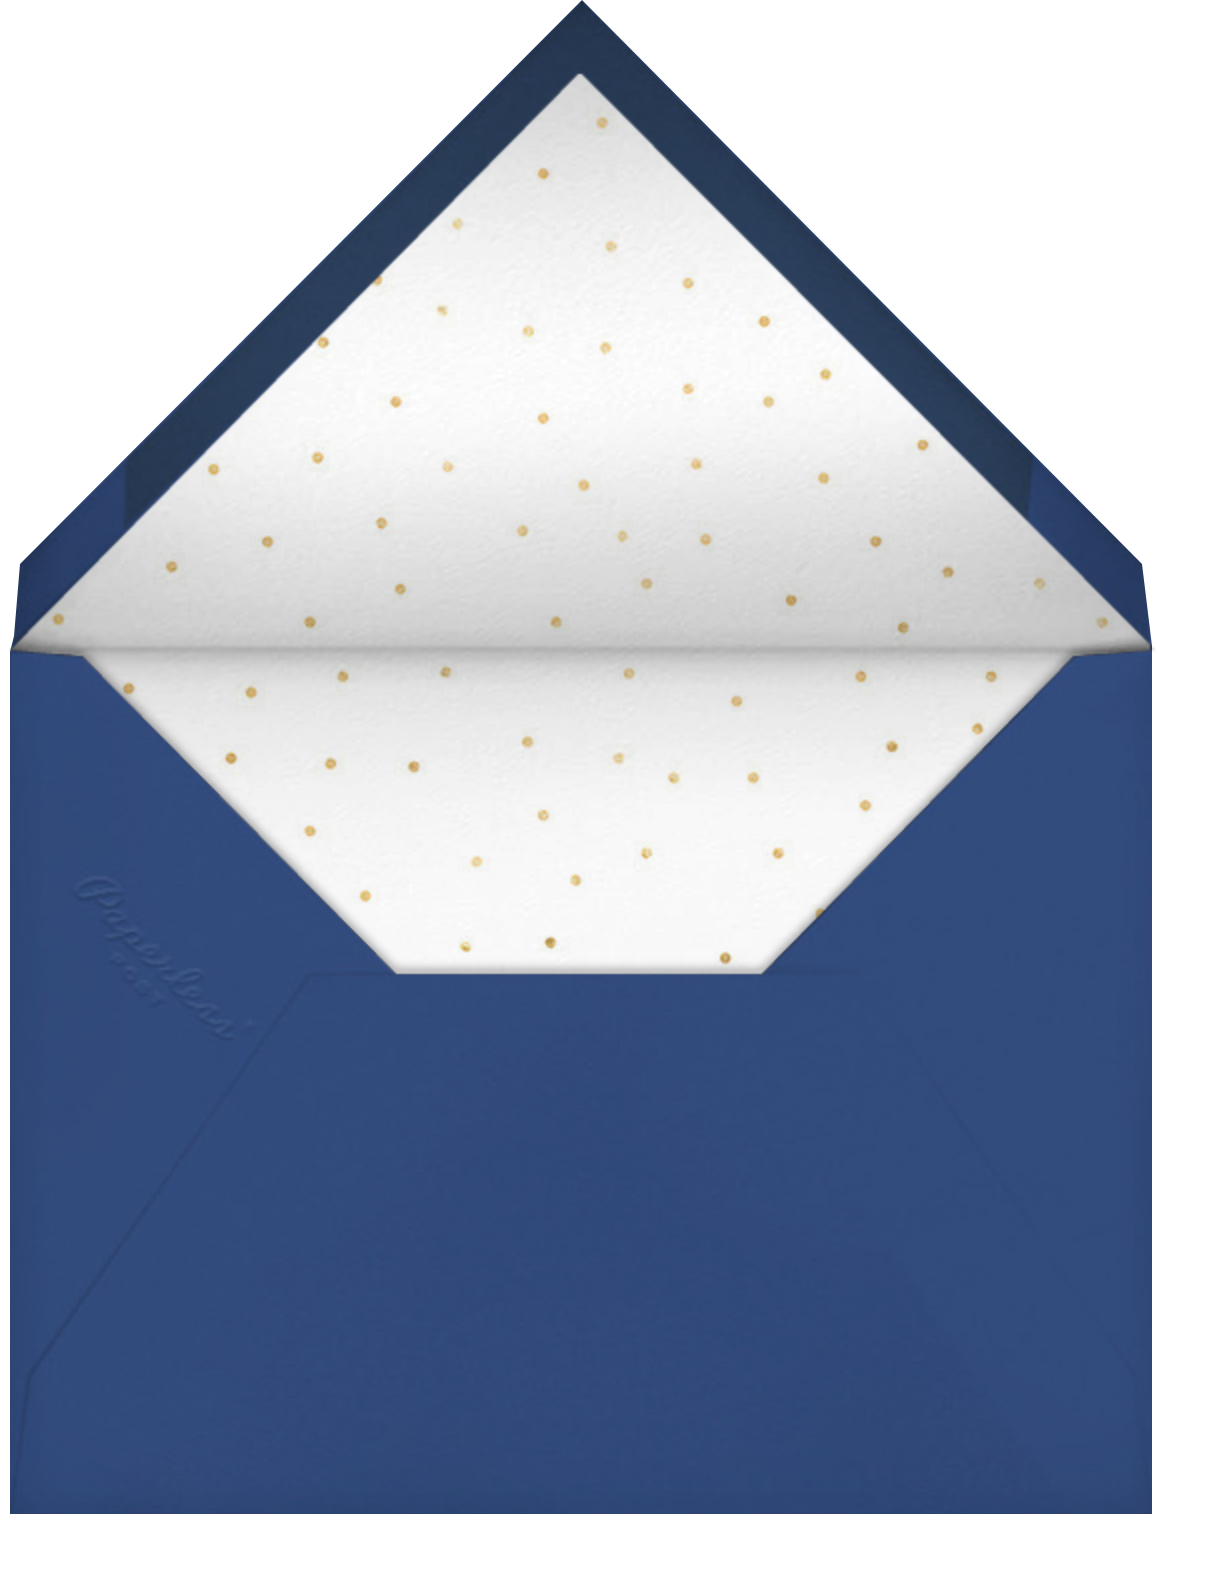 Golden Snow - Dark Blue - Paperless Post - Company holiday cards - envelope back